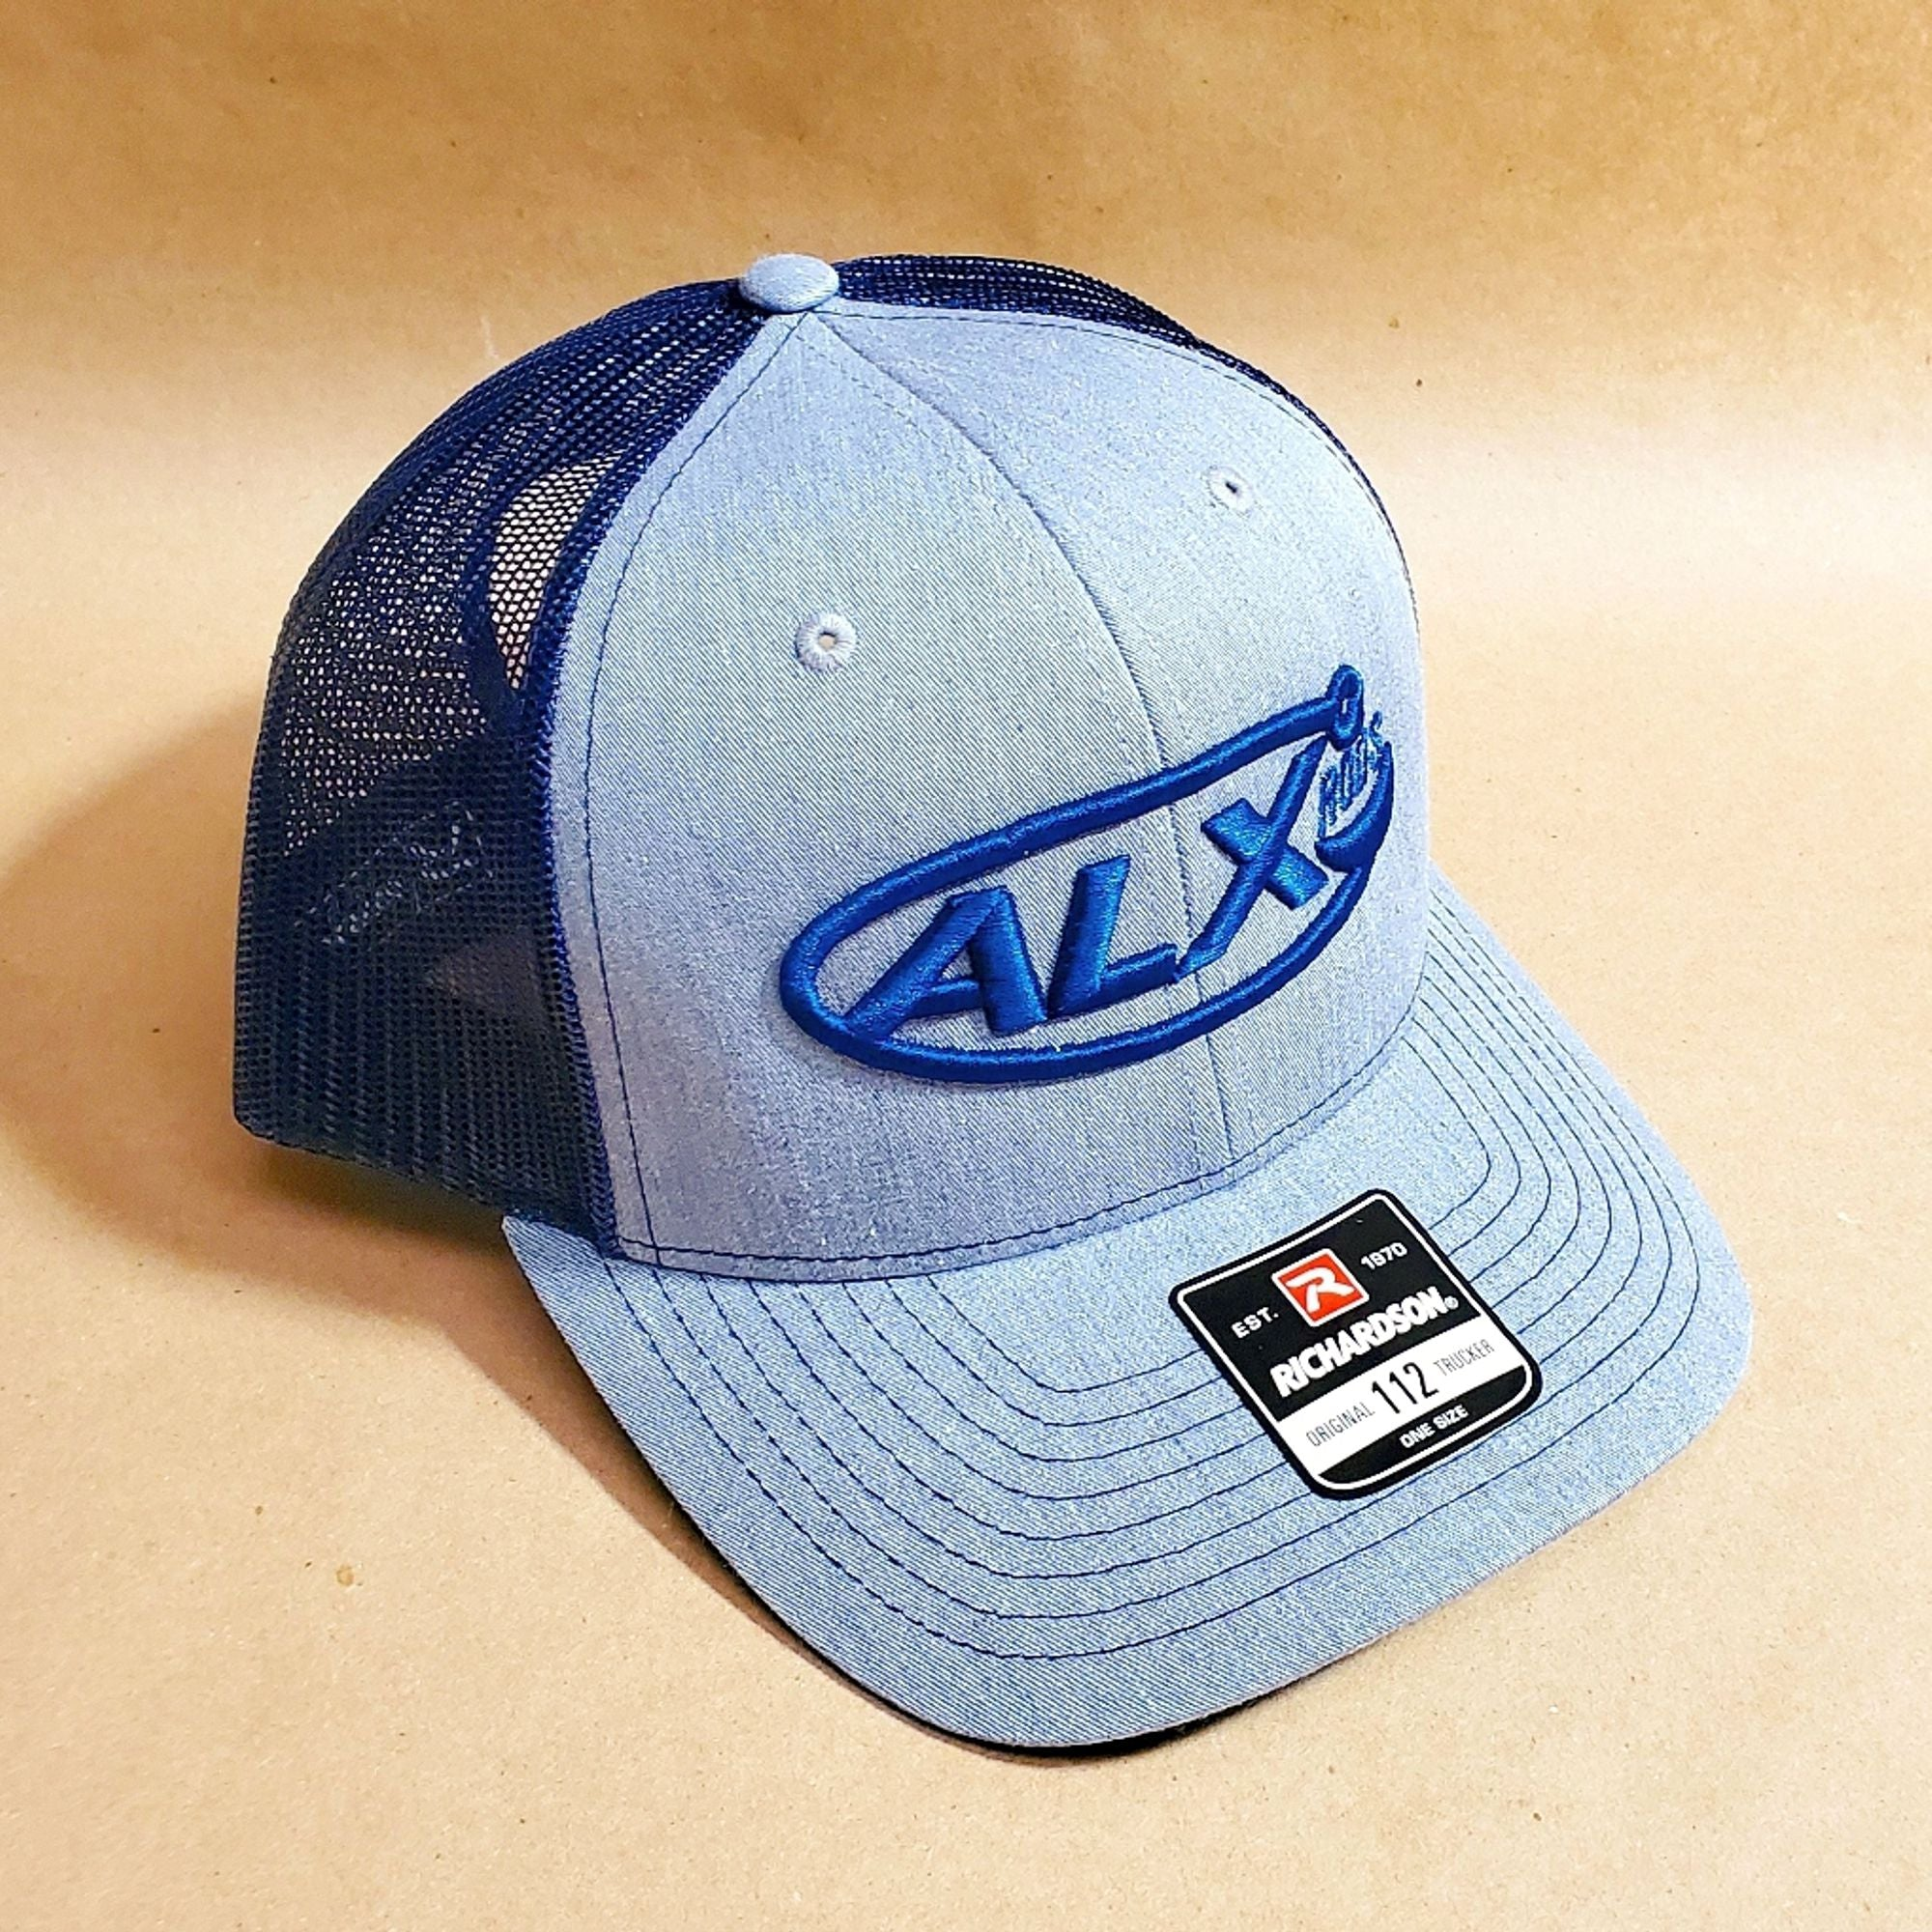 ALX Heather Grey/Navy Mesh Trucker Richardson Hat